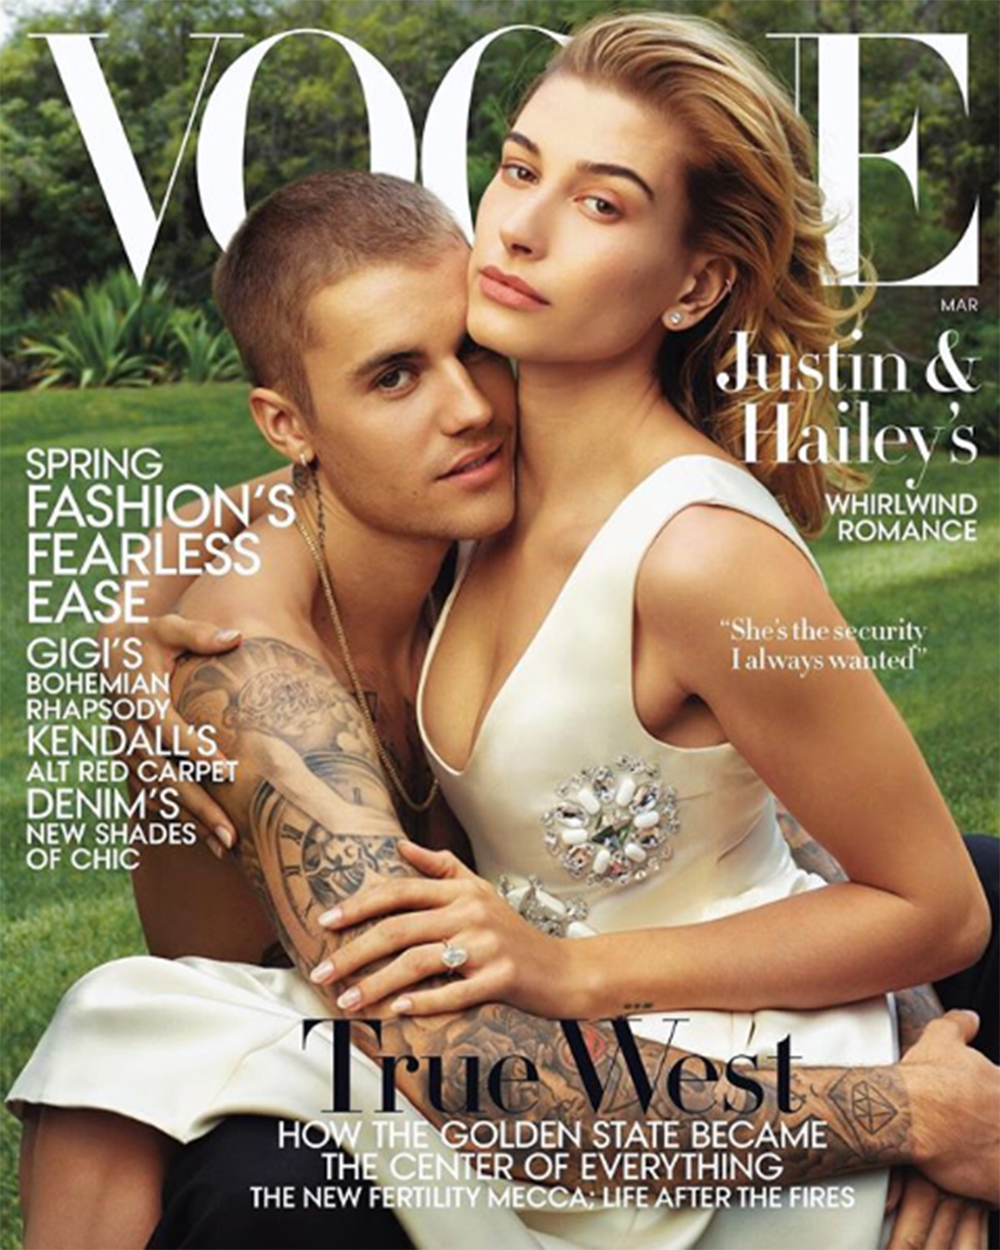 『VOGUE』表紙を飾ったジャスティン&ヘイリー夫妻(画像は『Hailey Rhode Bieber 2019年2月7日付Instagram「so excited to cover @voguemagazine's March issue with my loveeeeeee shot by #AnnieLeibovitz Read our full cover story in the link in my bio」』のスクリーンショット)